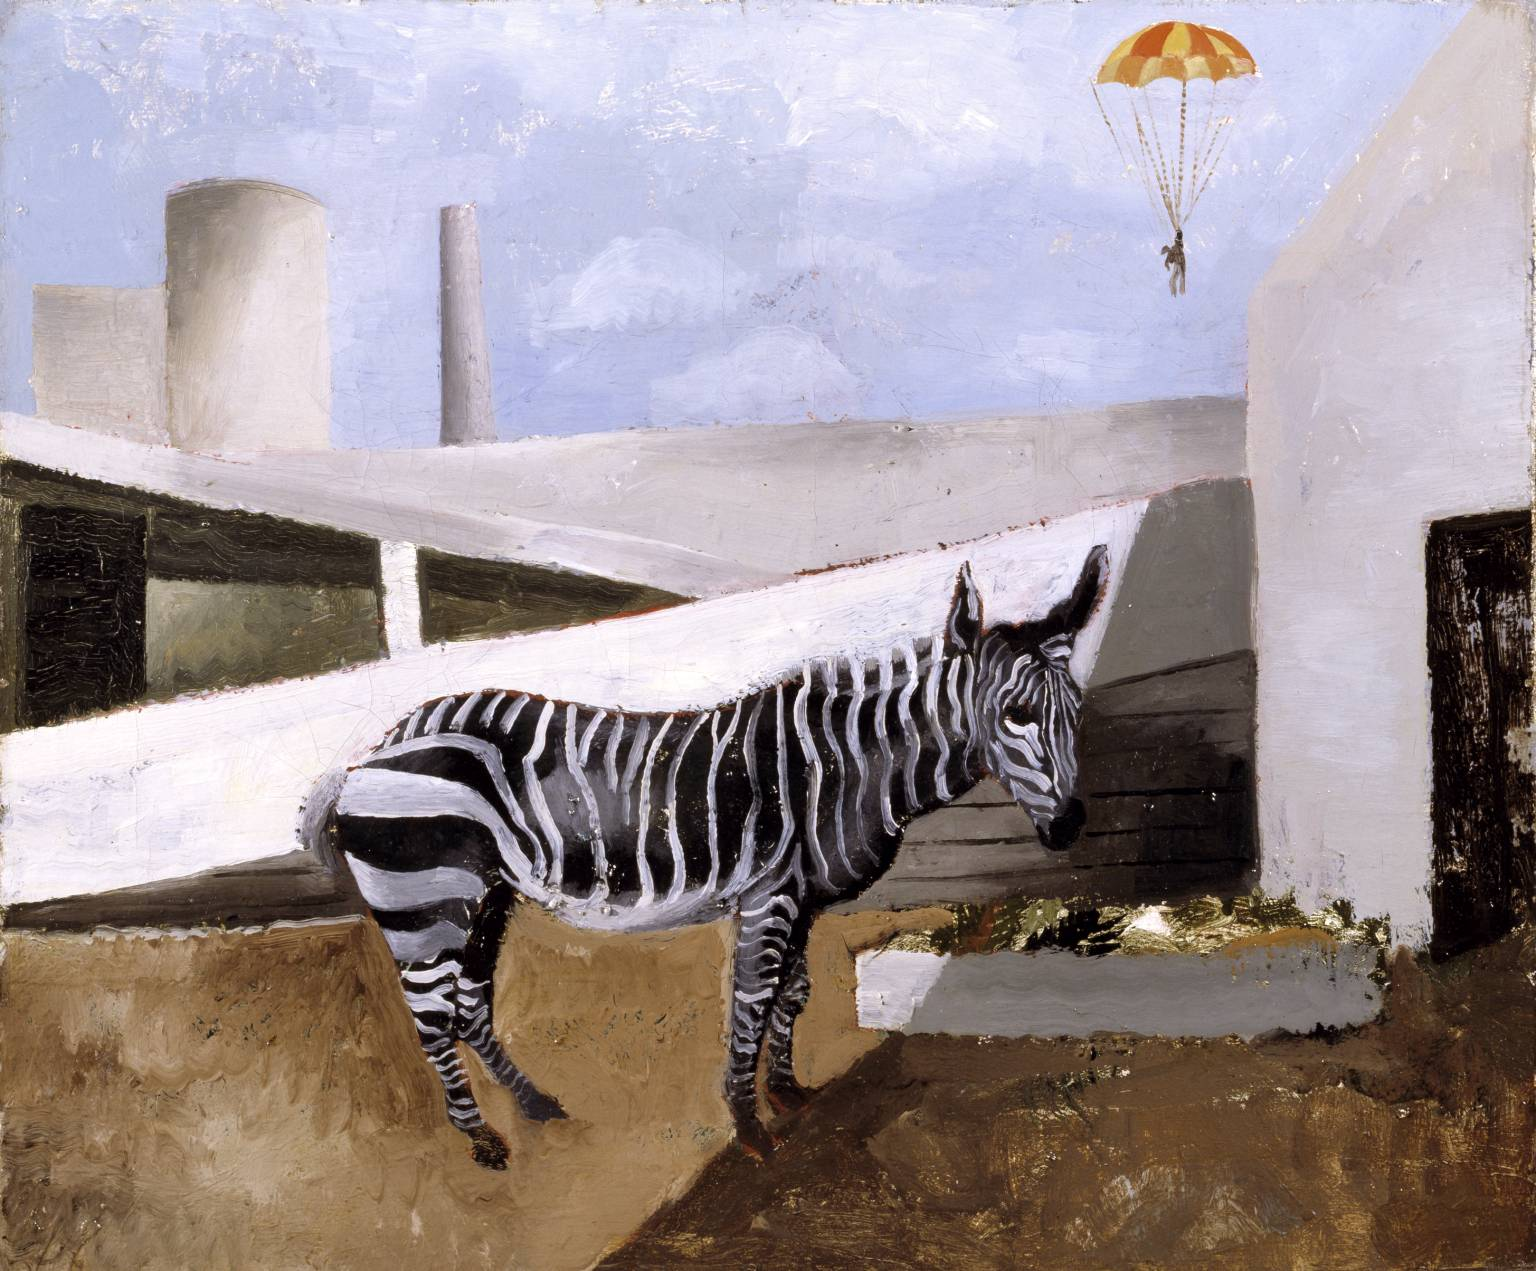 Christopher Wood, Zebra and Parachute 1930 - Courtesy Tate Gallery